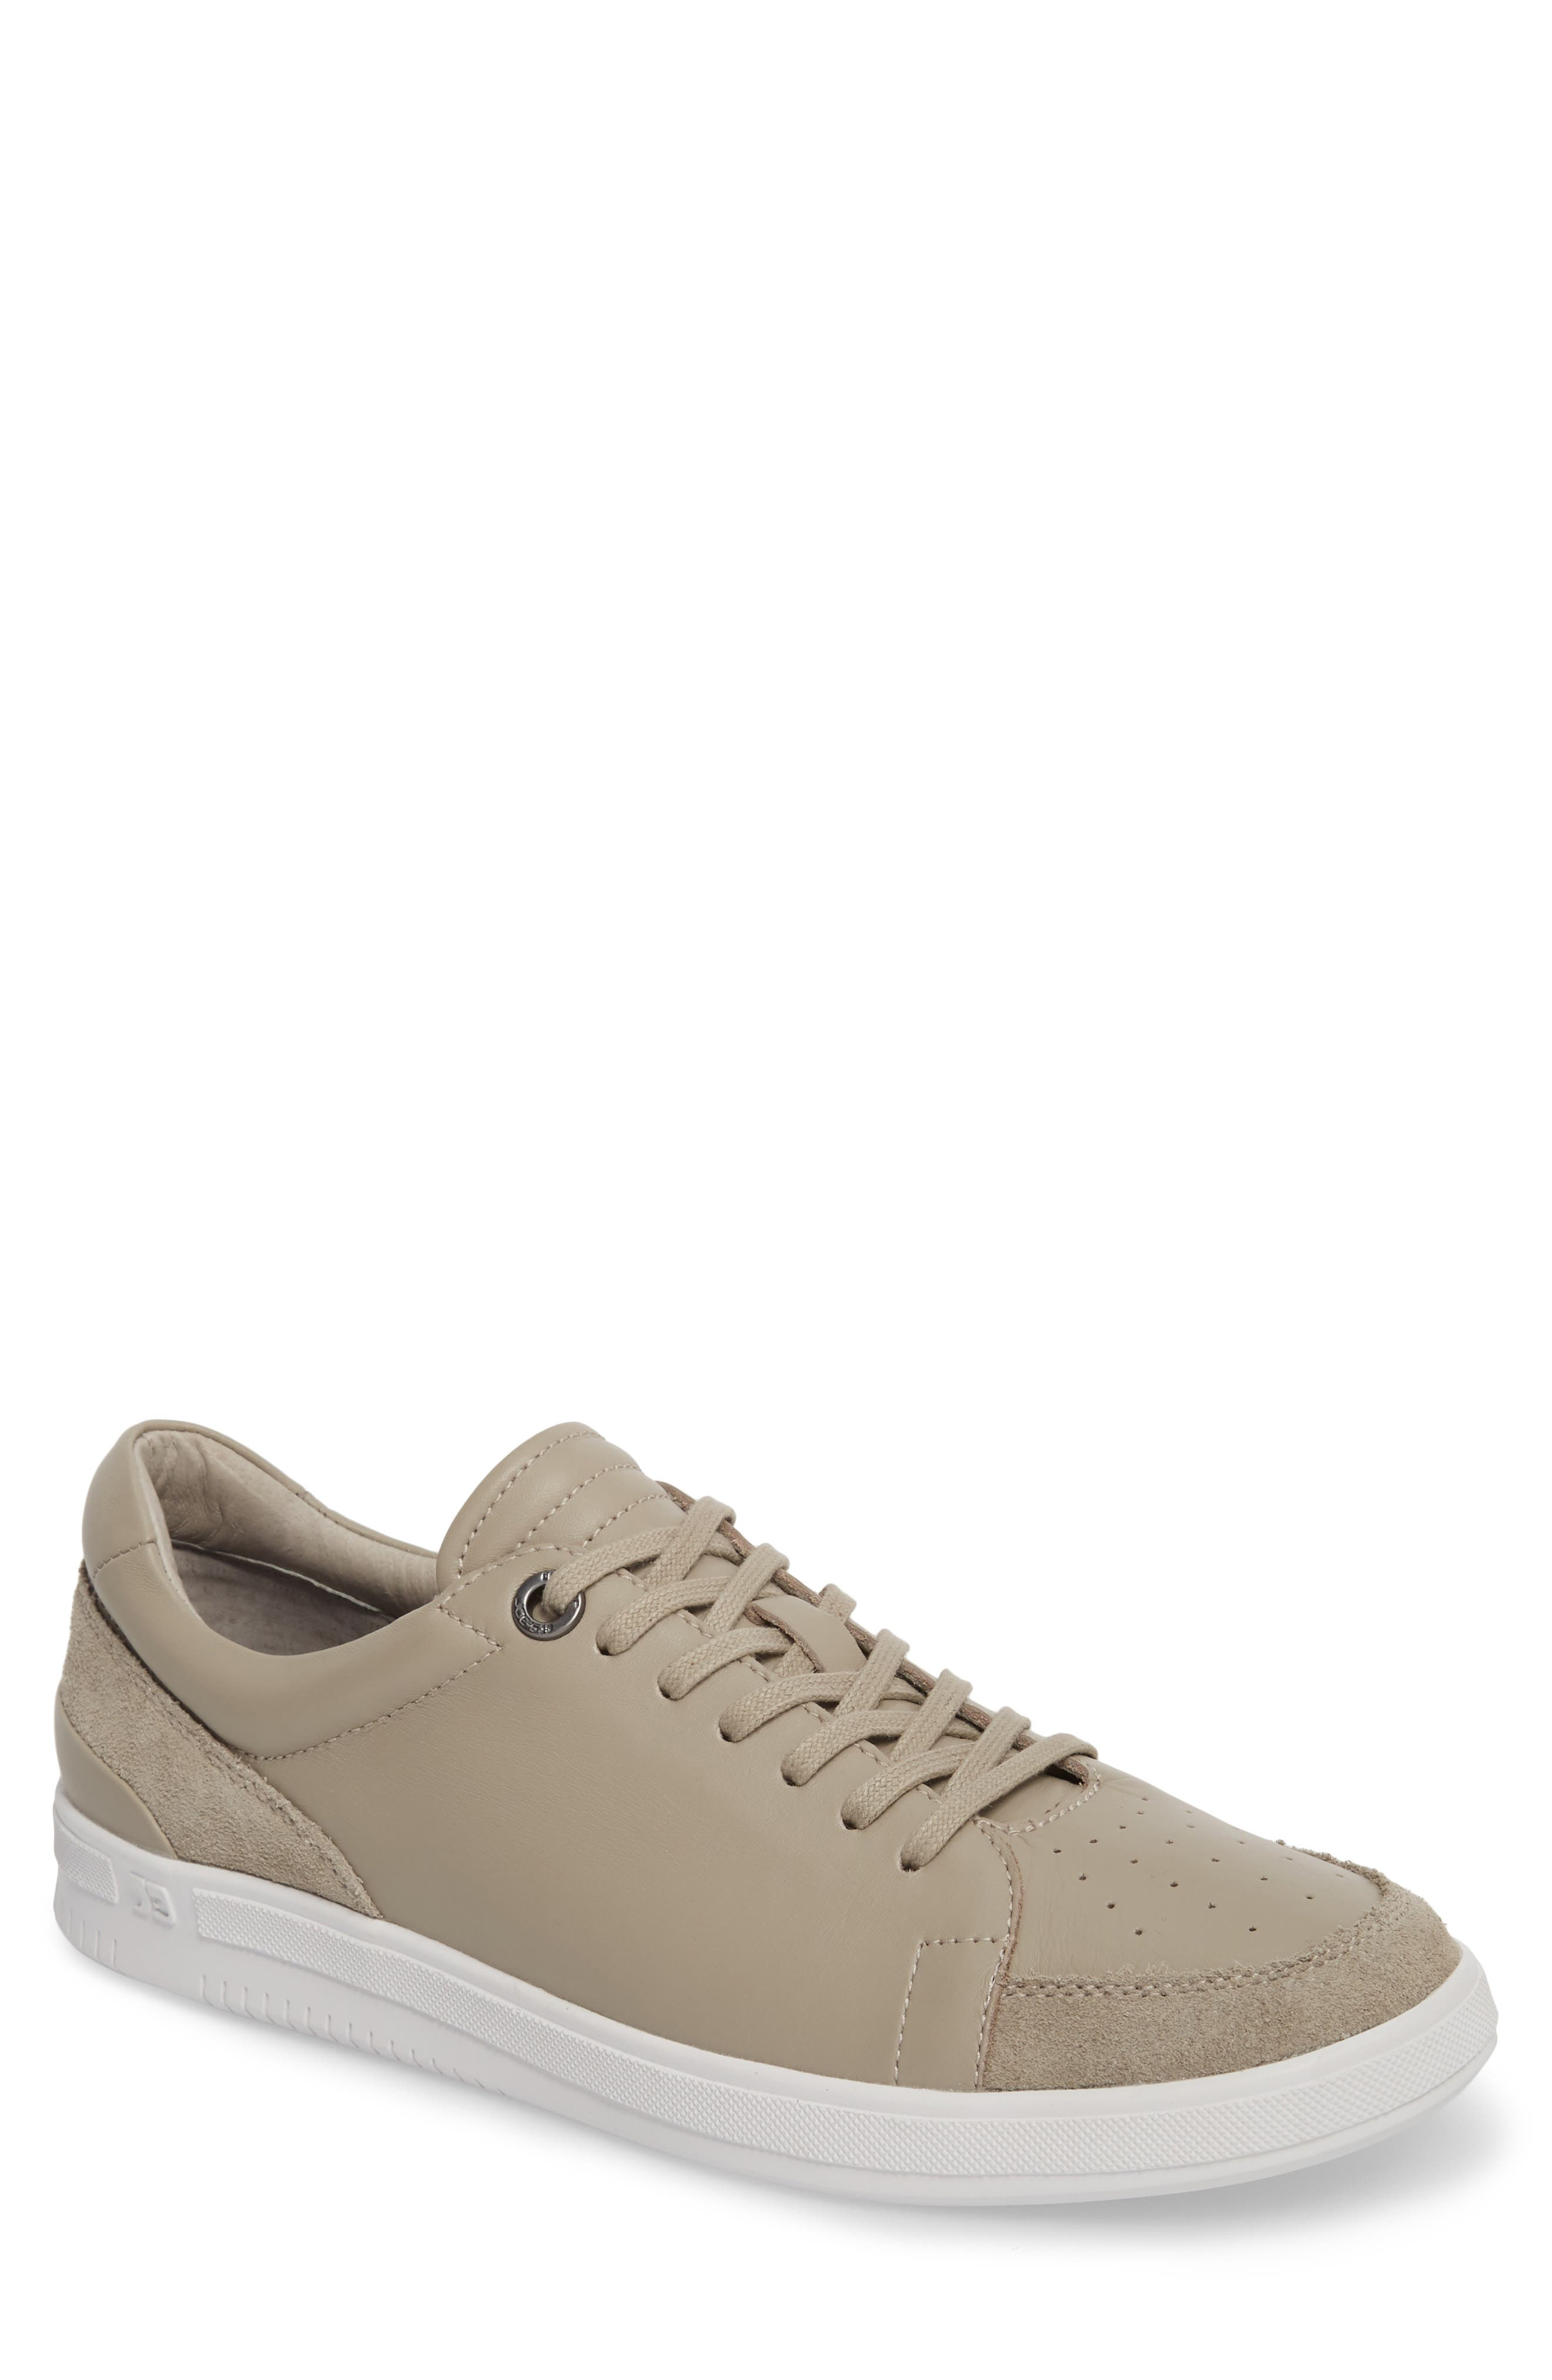 Joe Classic Low Top Sneaker,                         Main,                         color, STONE LEATHER